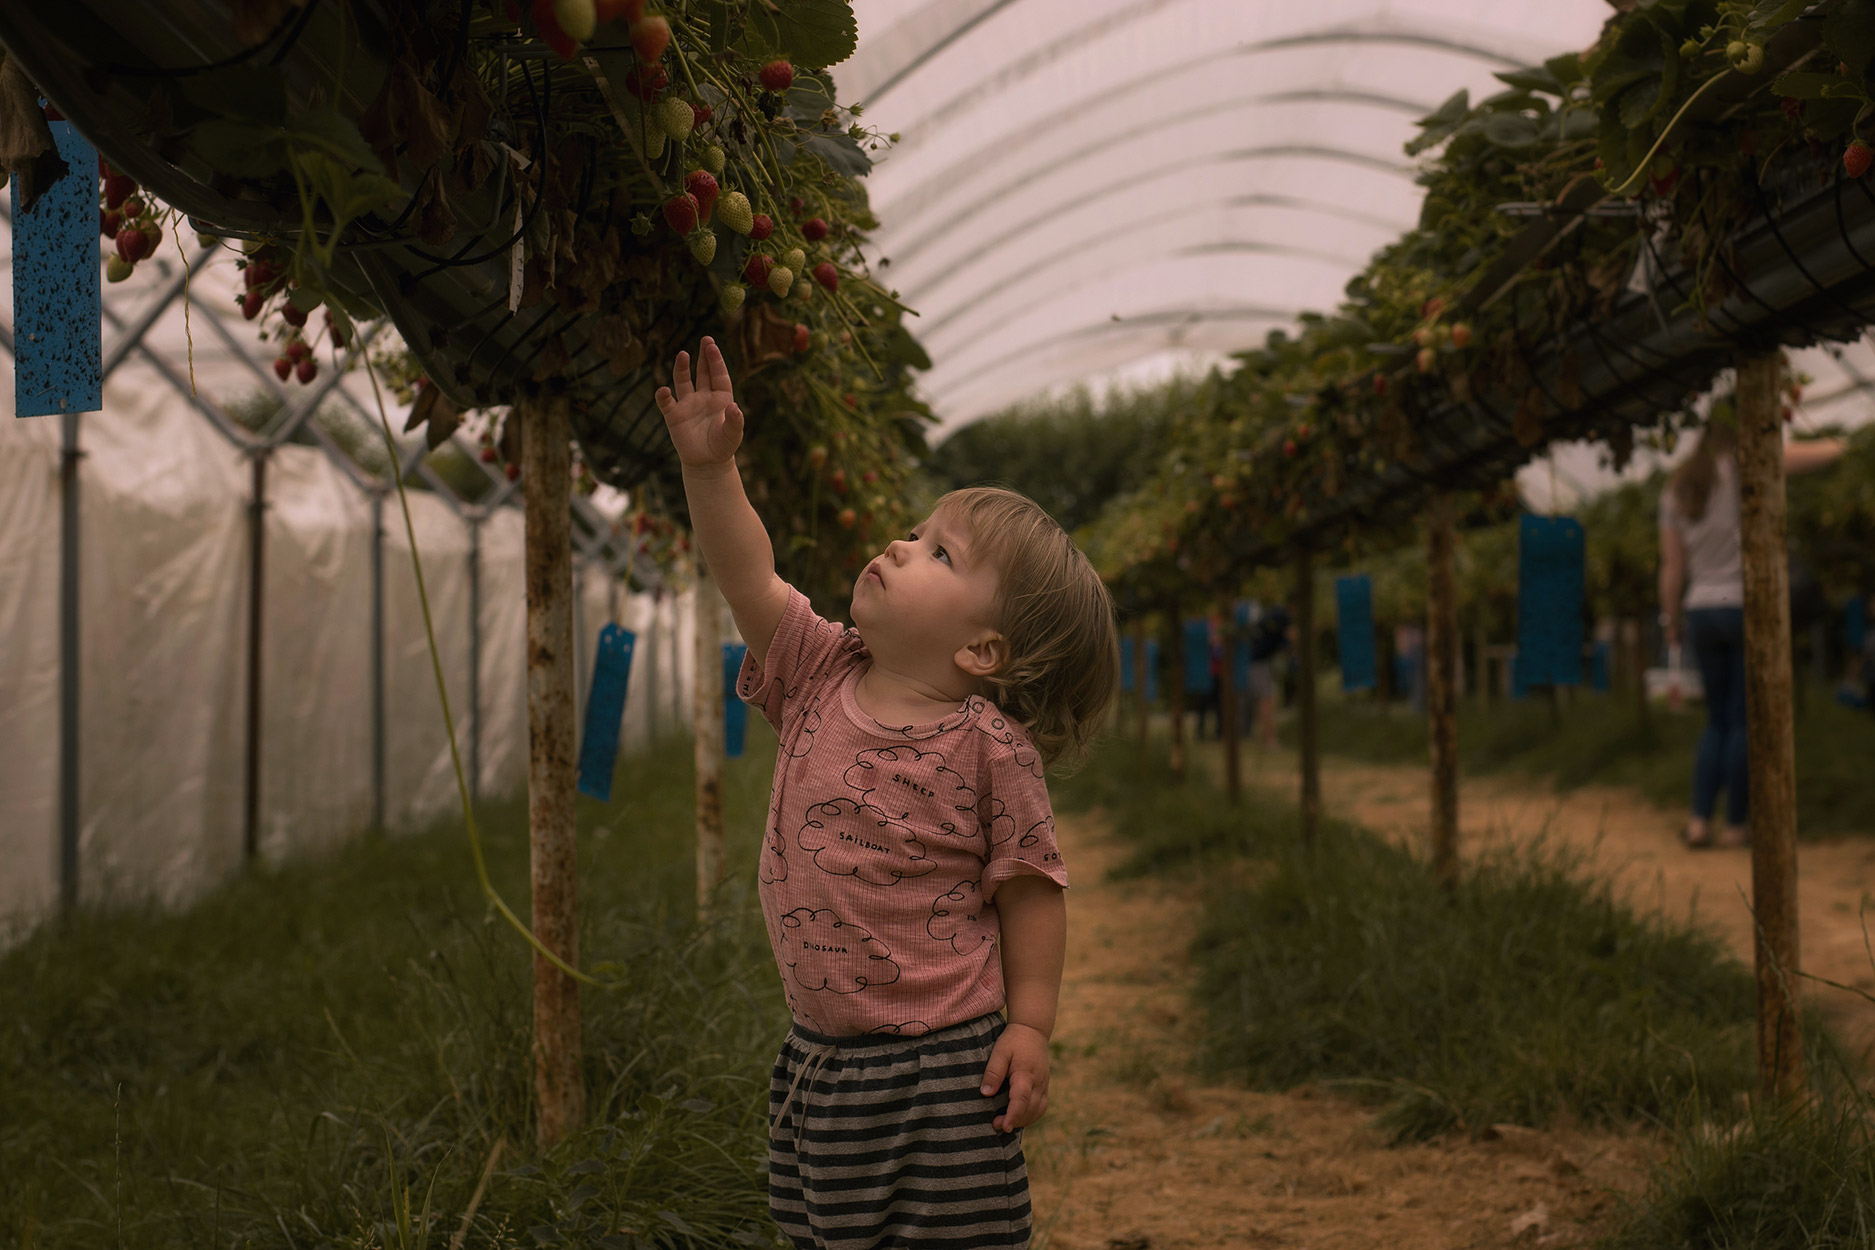 Mum and sons picking strawberries at Millets Farm, Oxfordshire, wearing Bobo Choses pink thoughts vest and One More in the Family harems